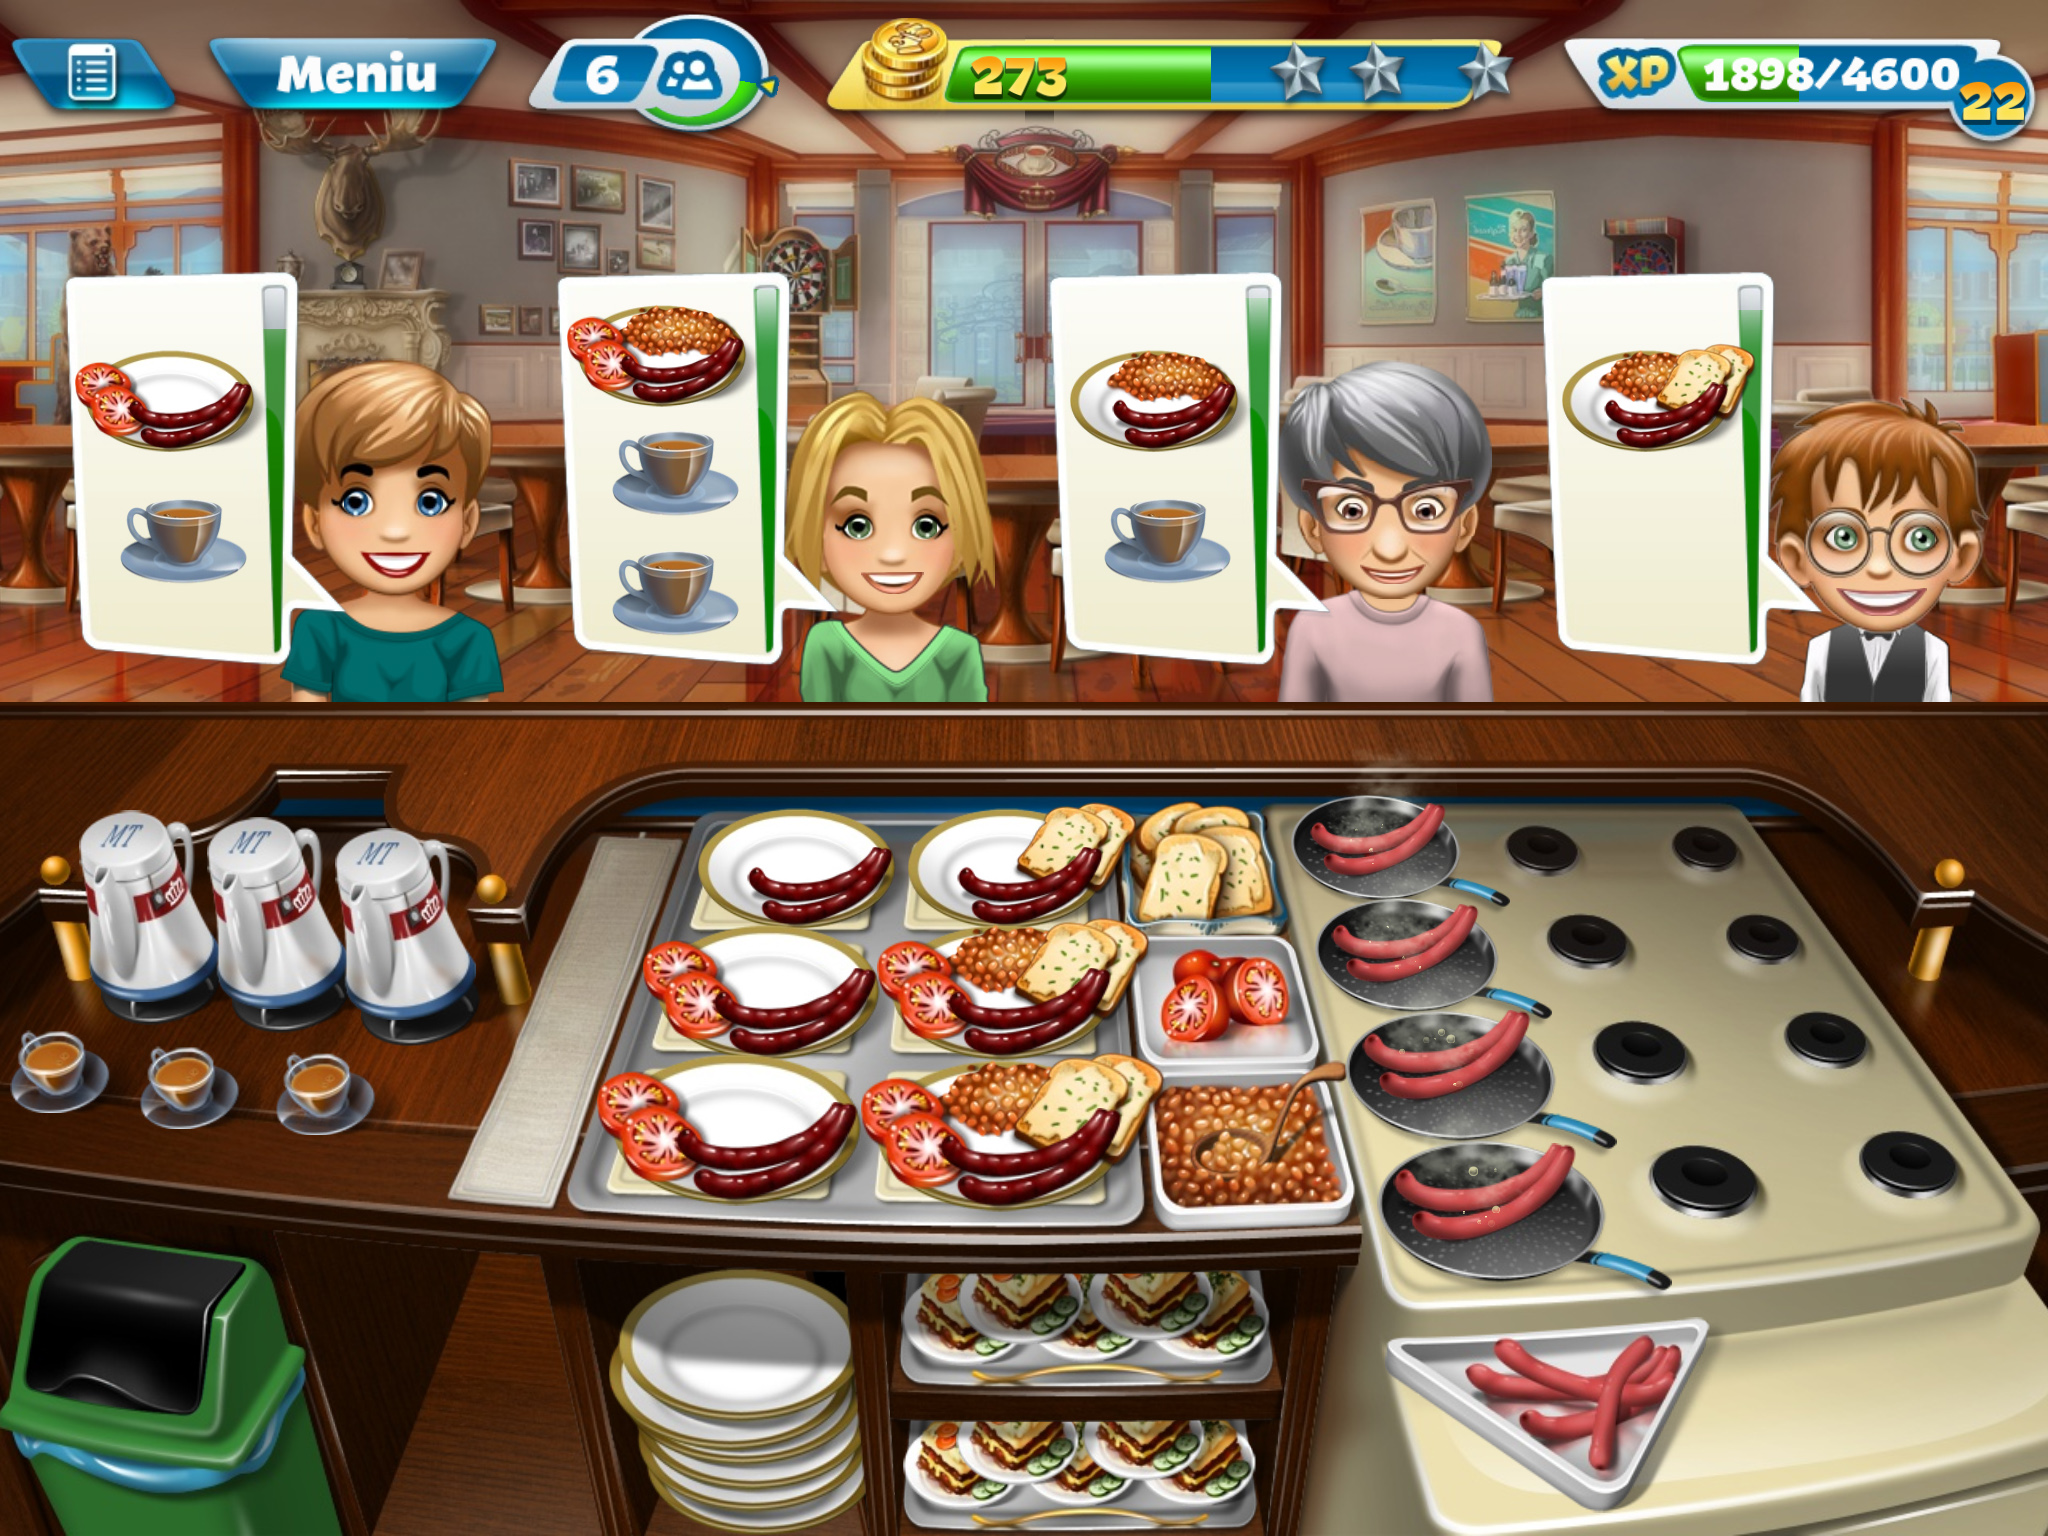 Cooking Fever tops the charts once again thanks to latest Breakfast Café-themed update